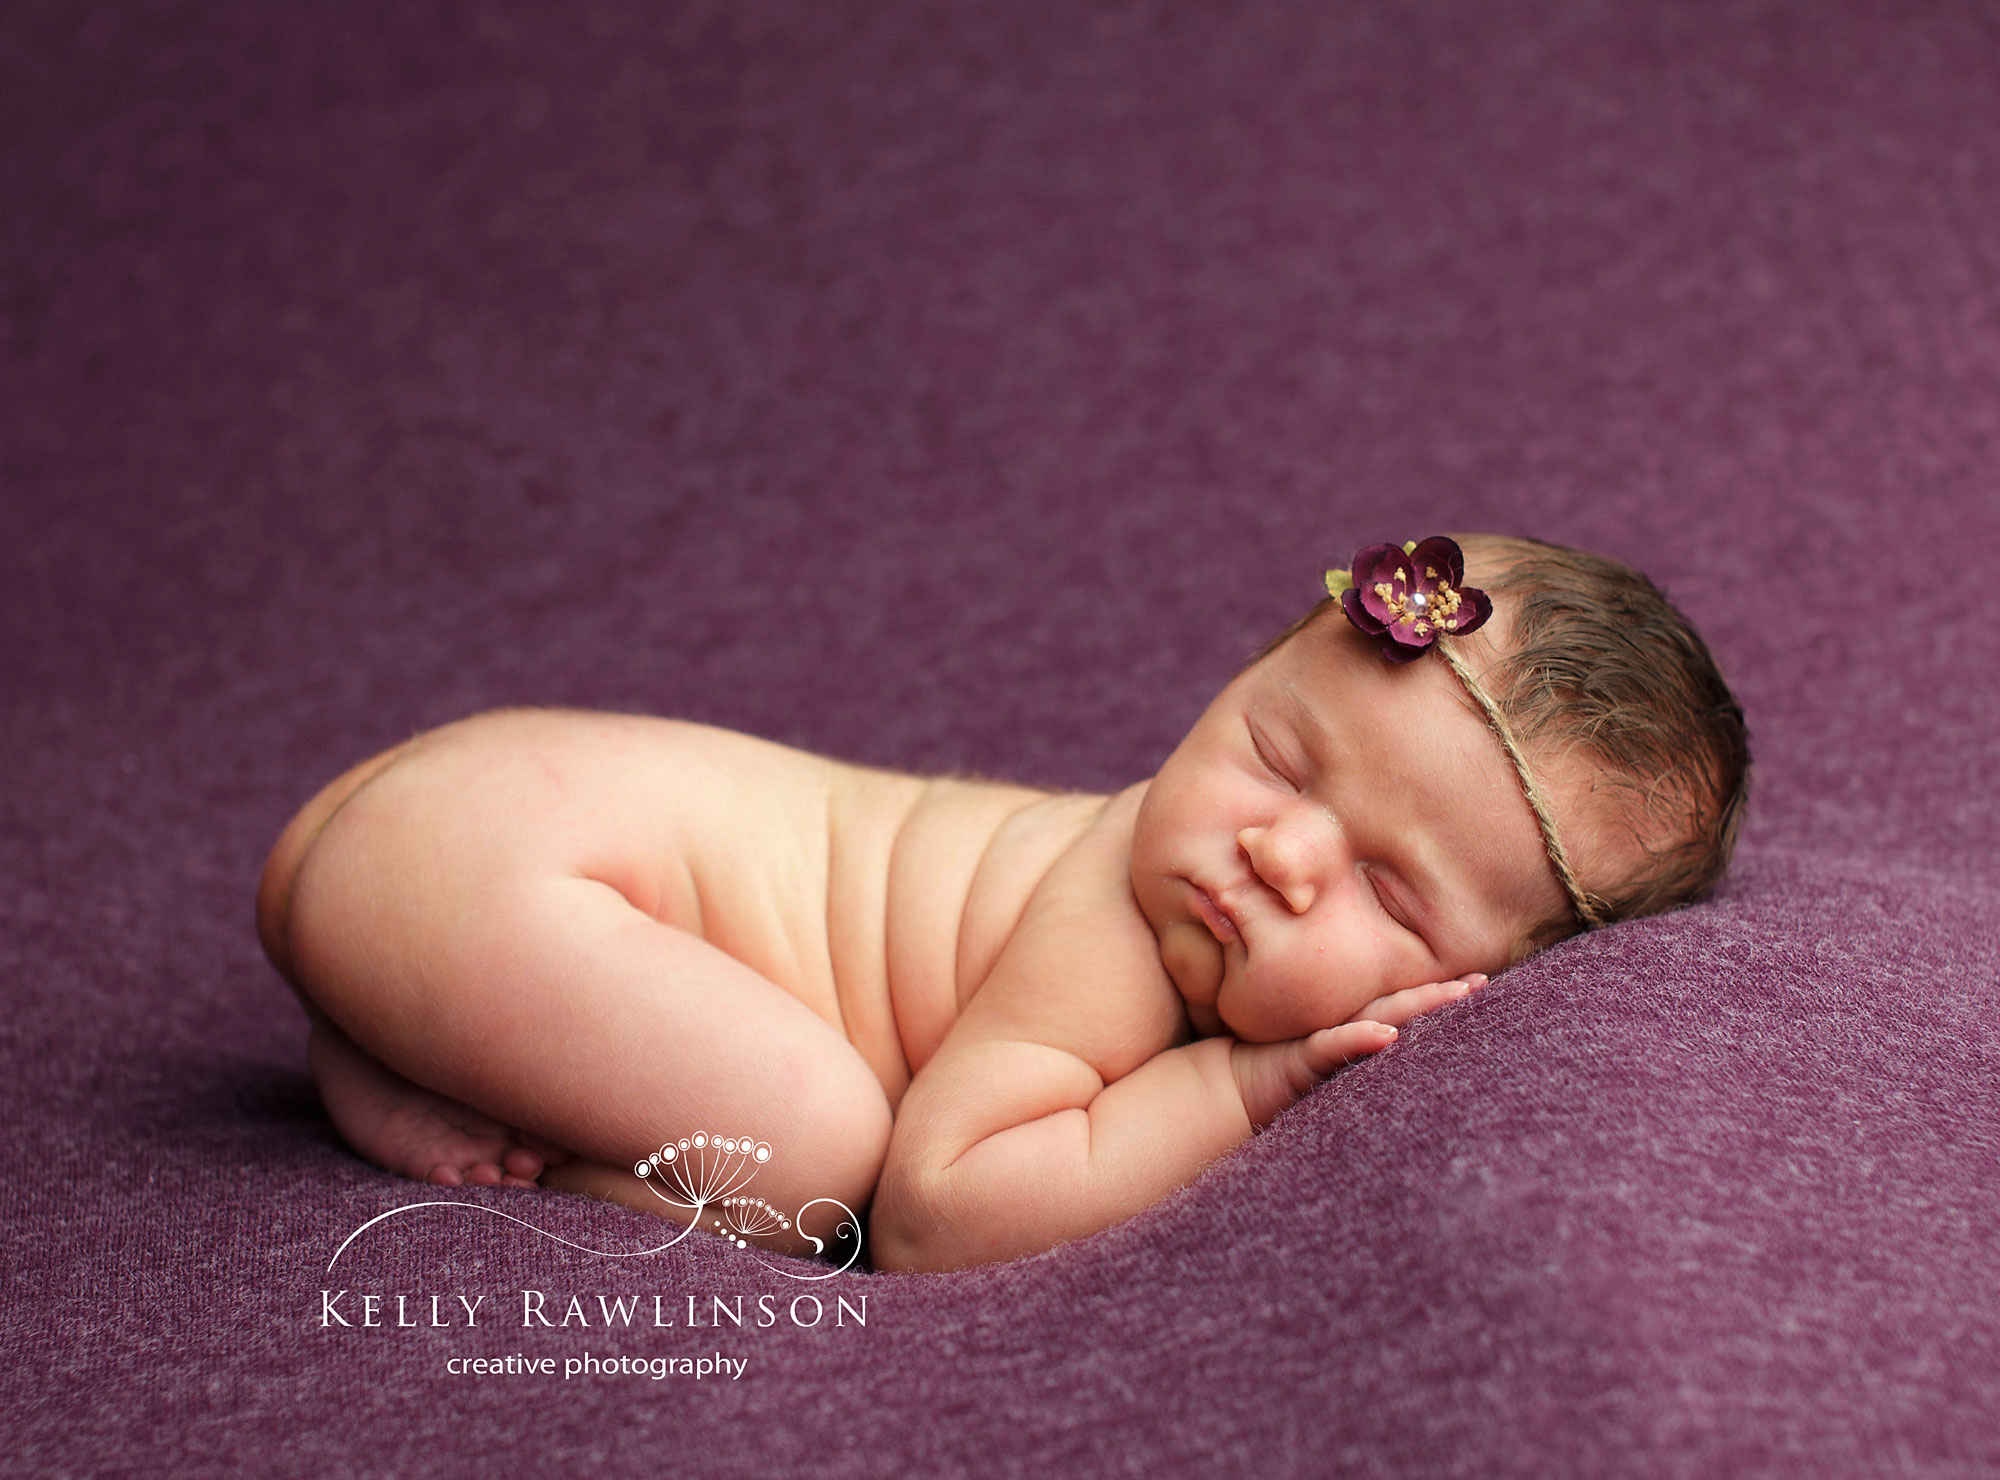 Quality newborn pictures will show your tiny newborn sleeping peacefully